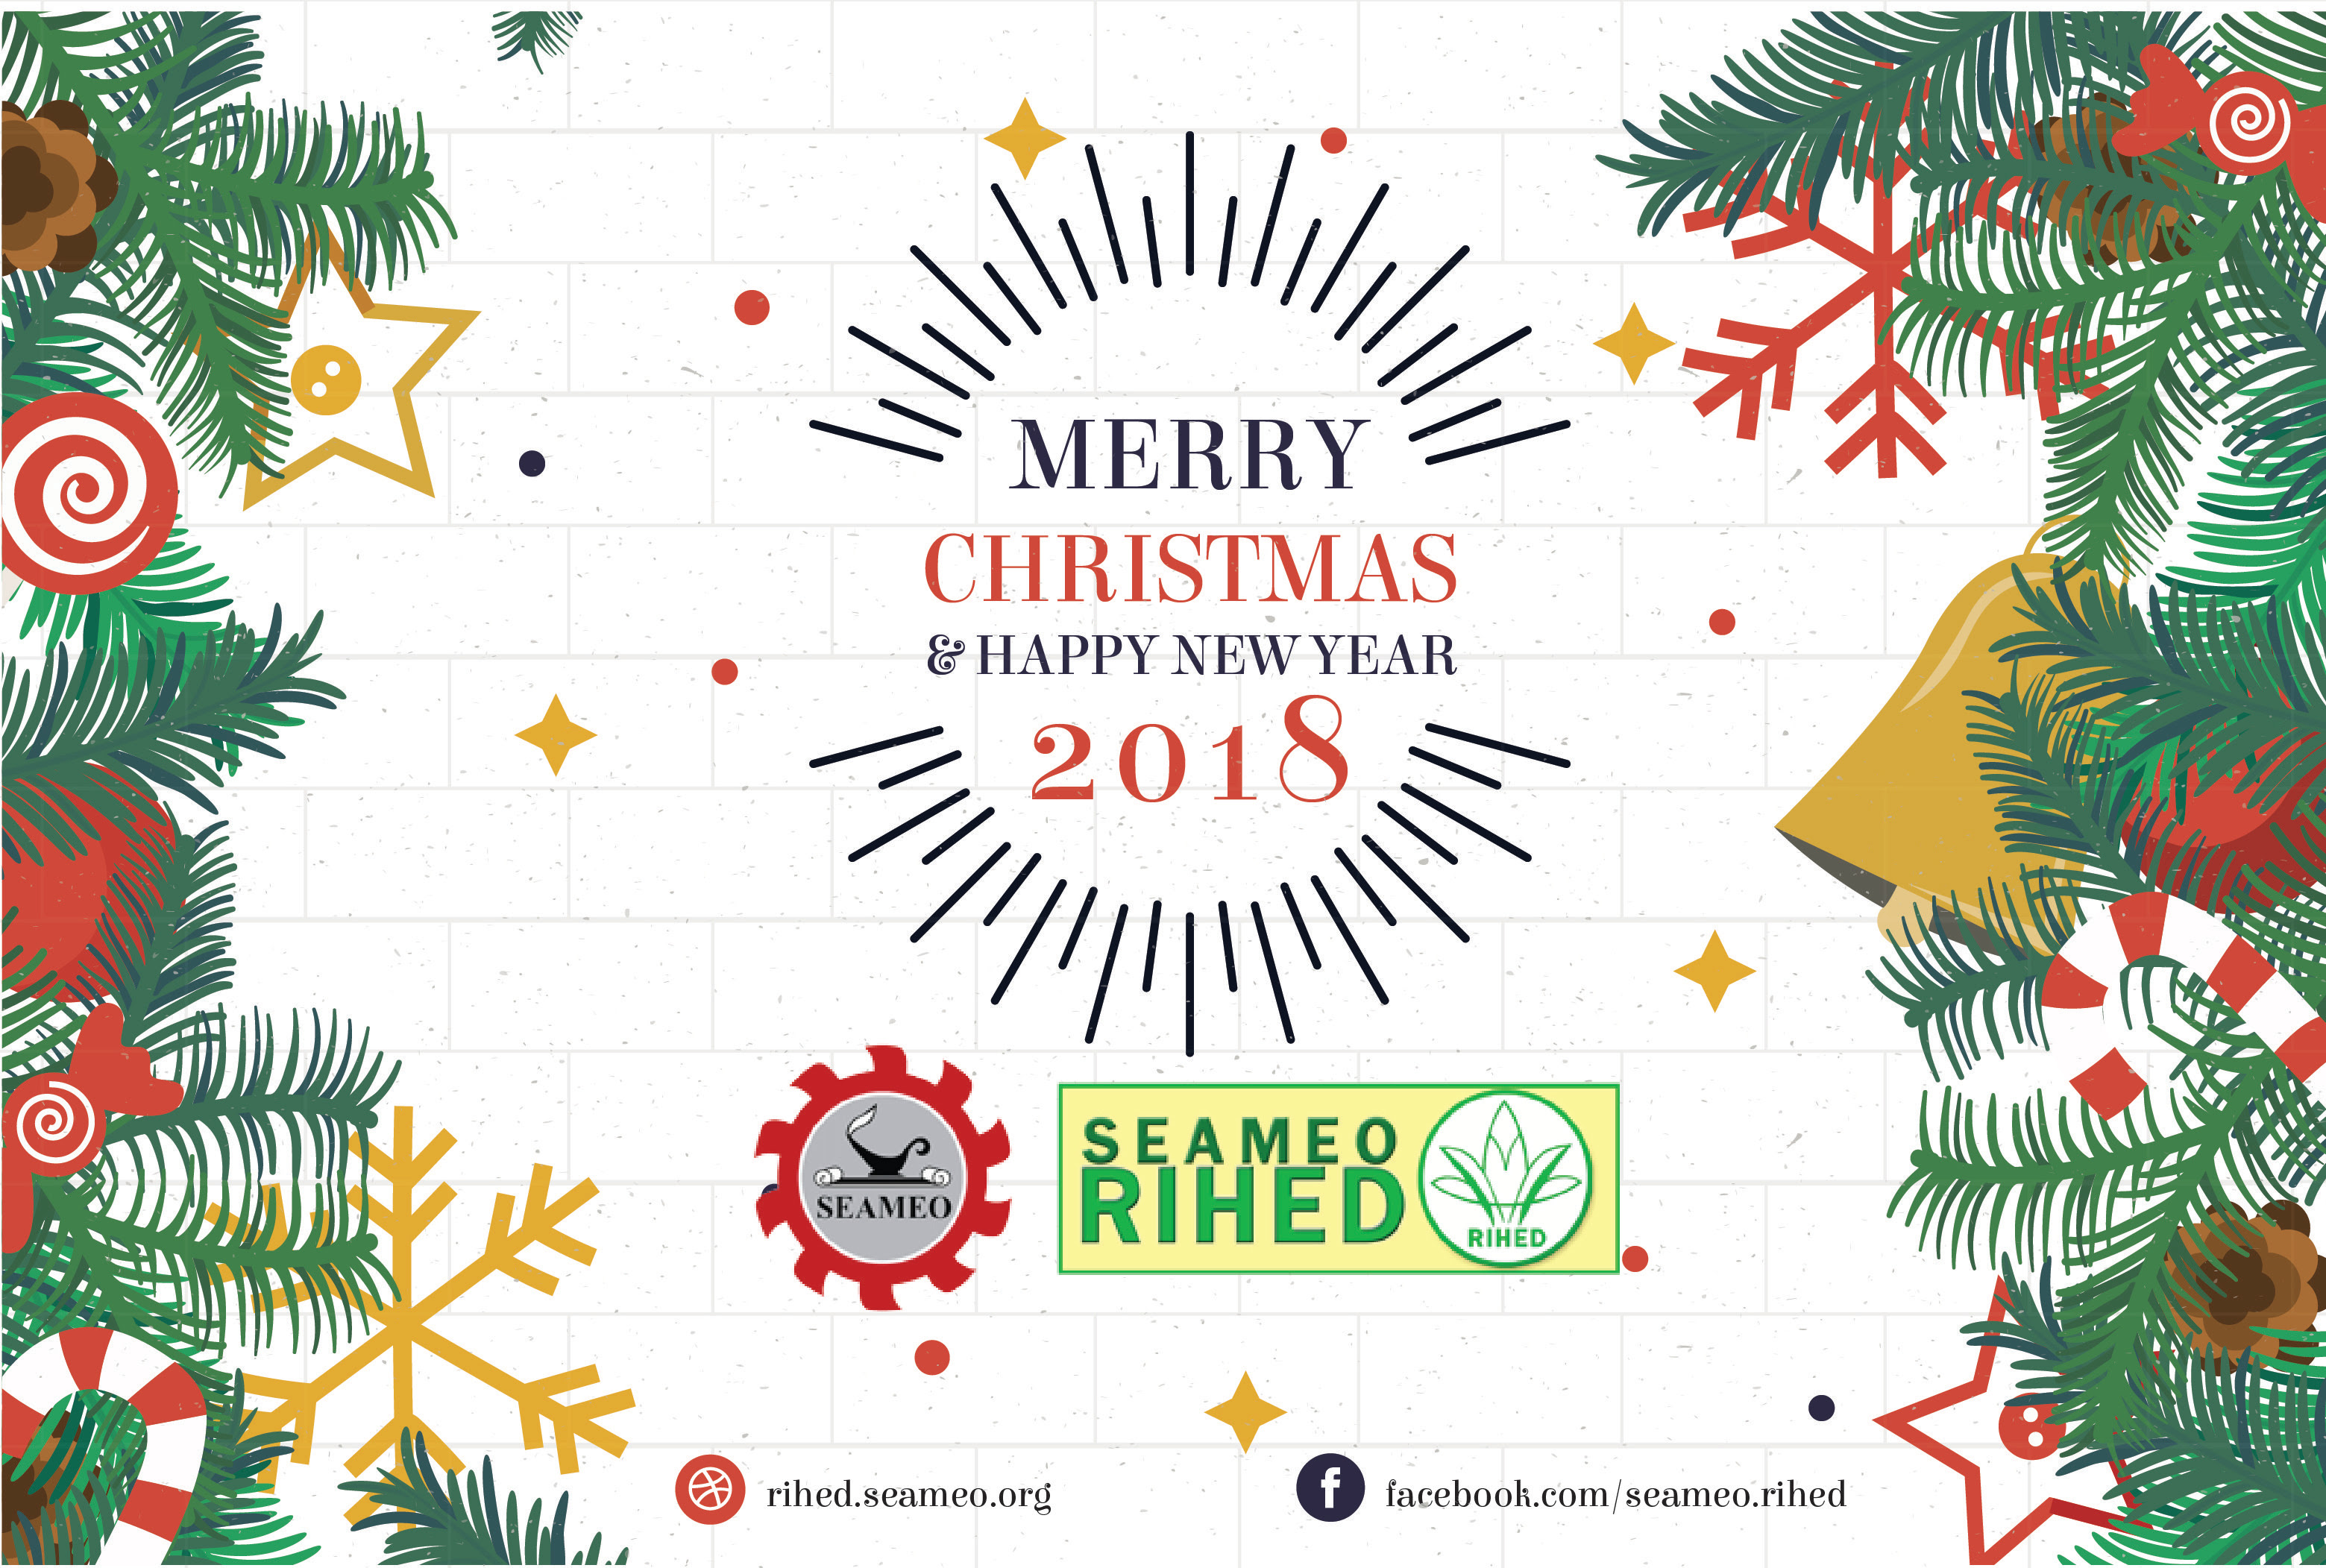 Holiday greetings from seameo rihed seameo rihed holiday greetings from seameo rihed kristyandbryce Image collections